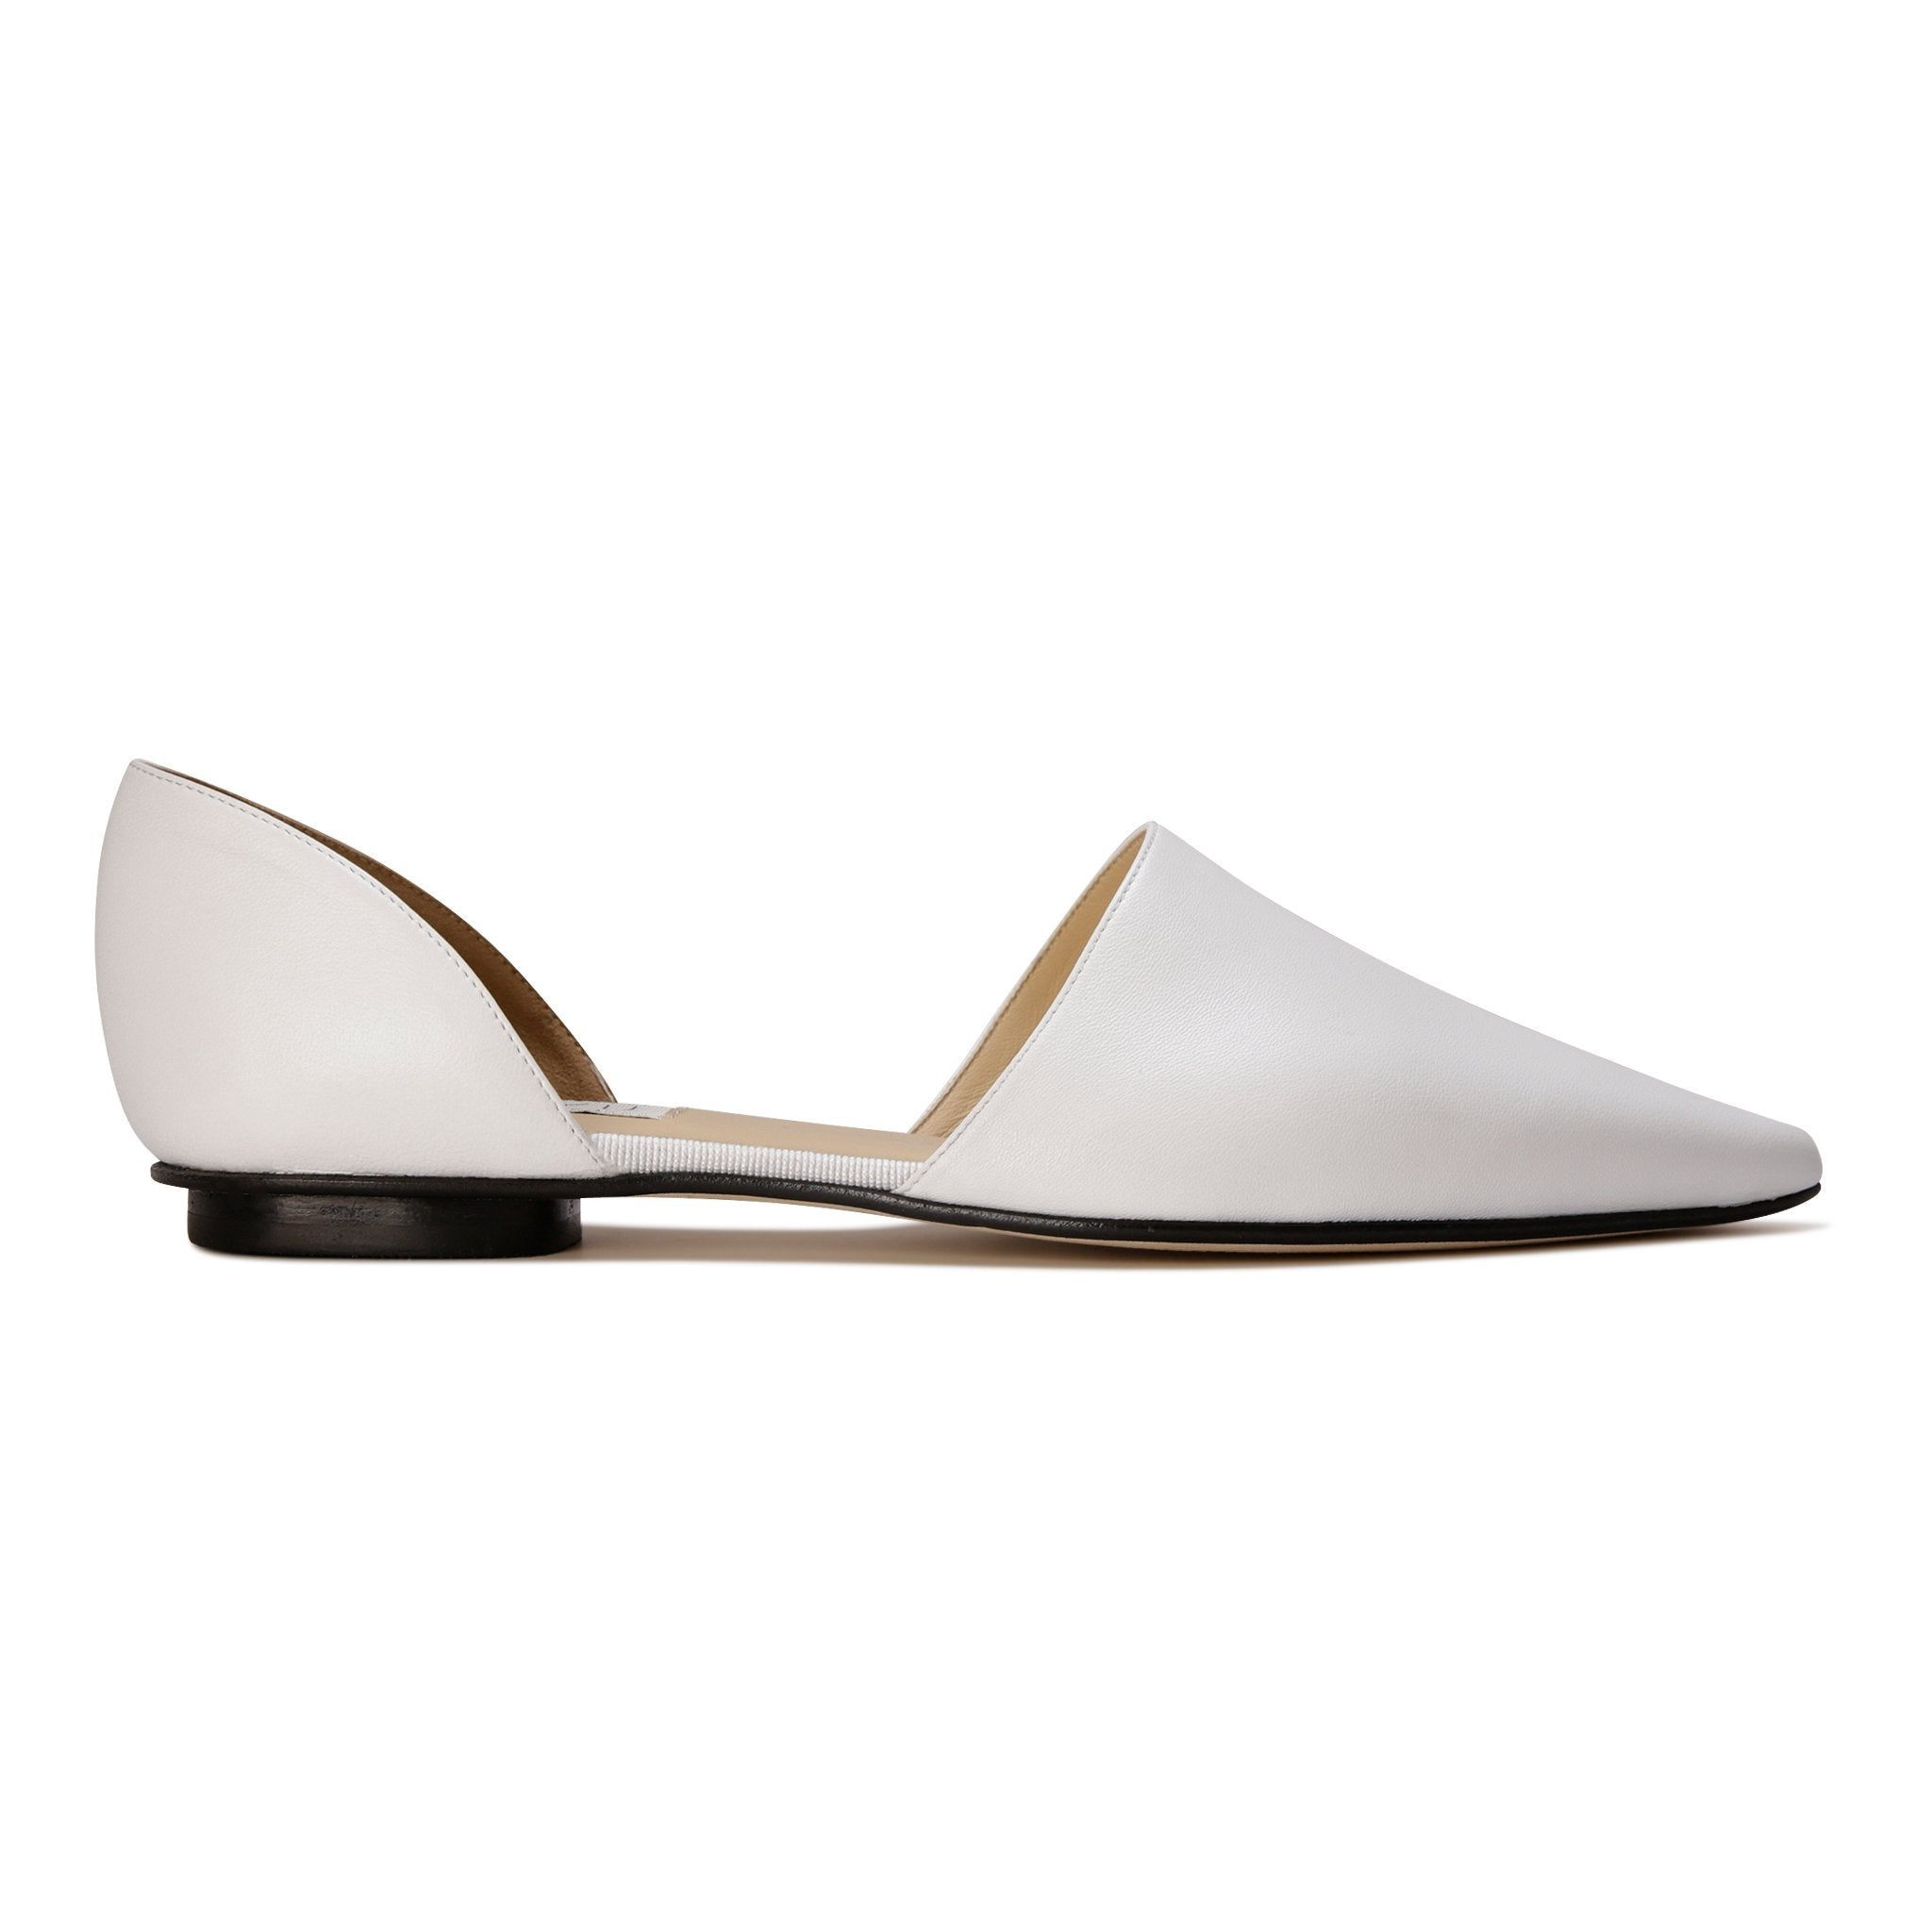 ELBA - Nappa Bianco, VIAJIYU - Women's Hand Made Sustainable Luxury Shoes. Made in Italy. Made to Order.